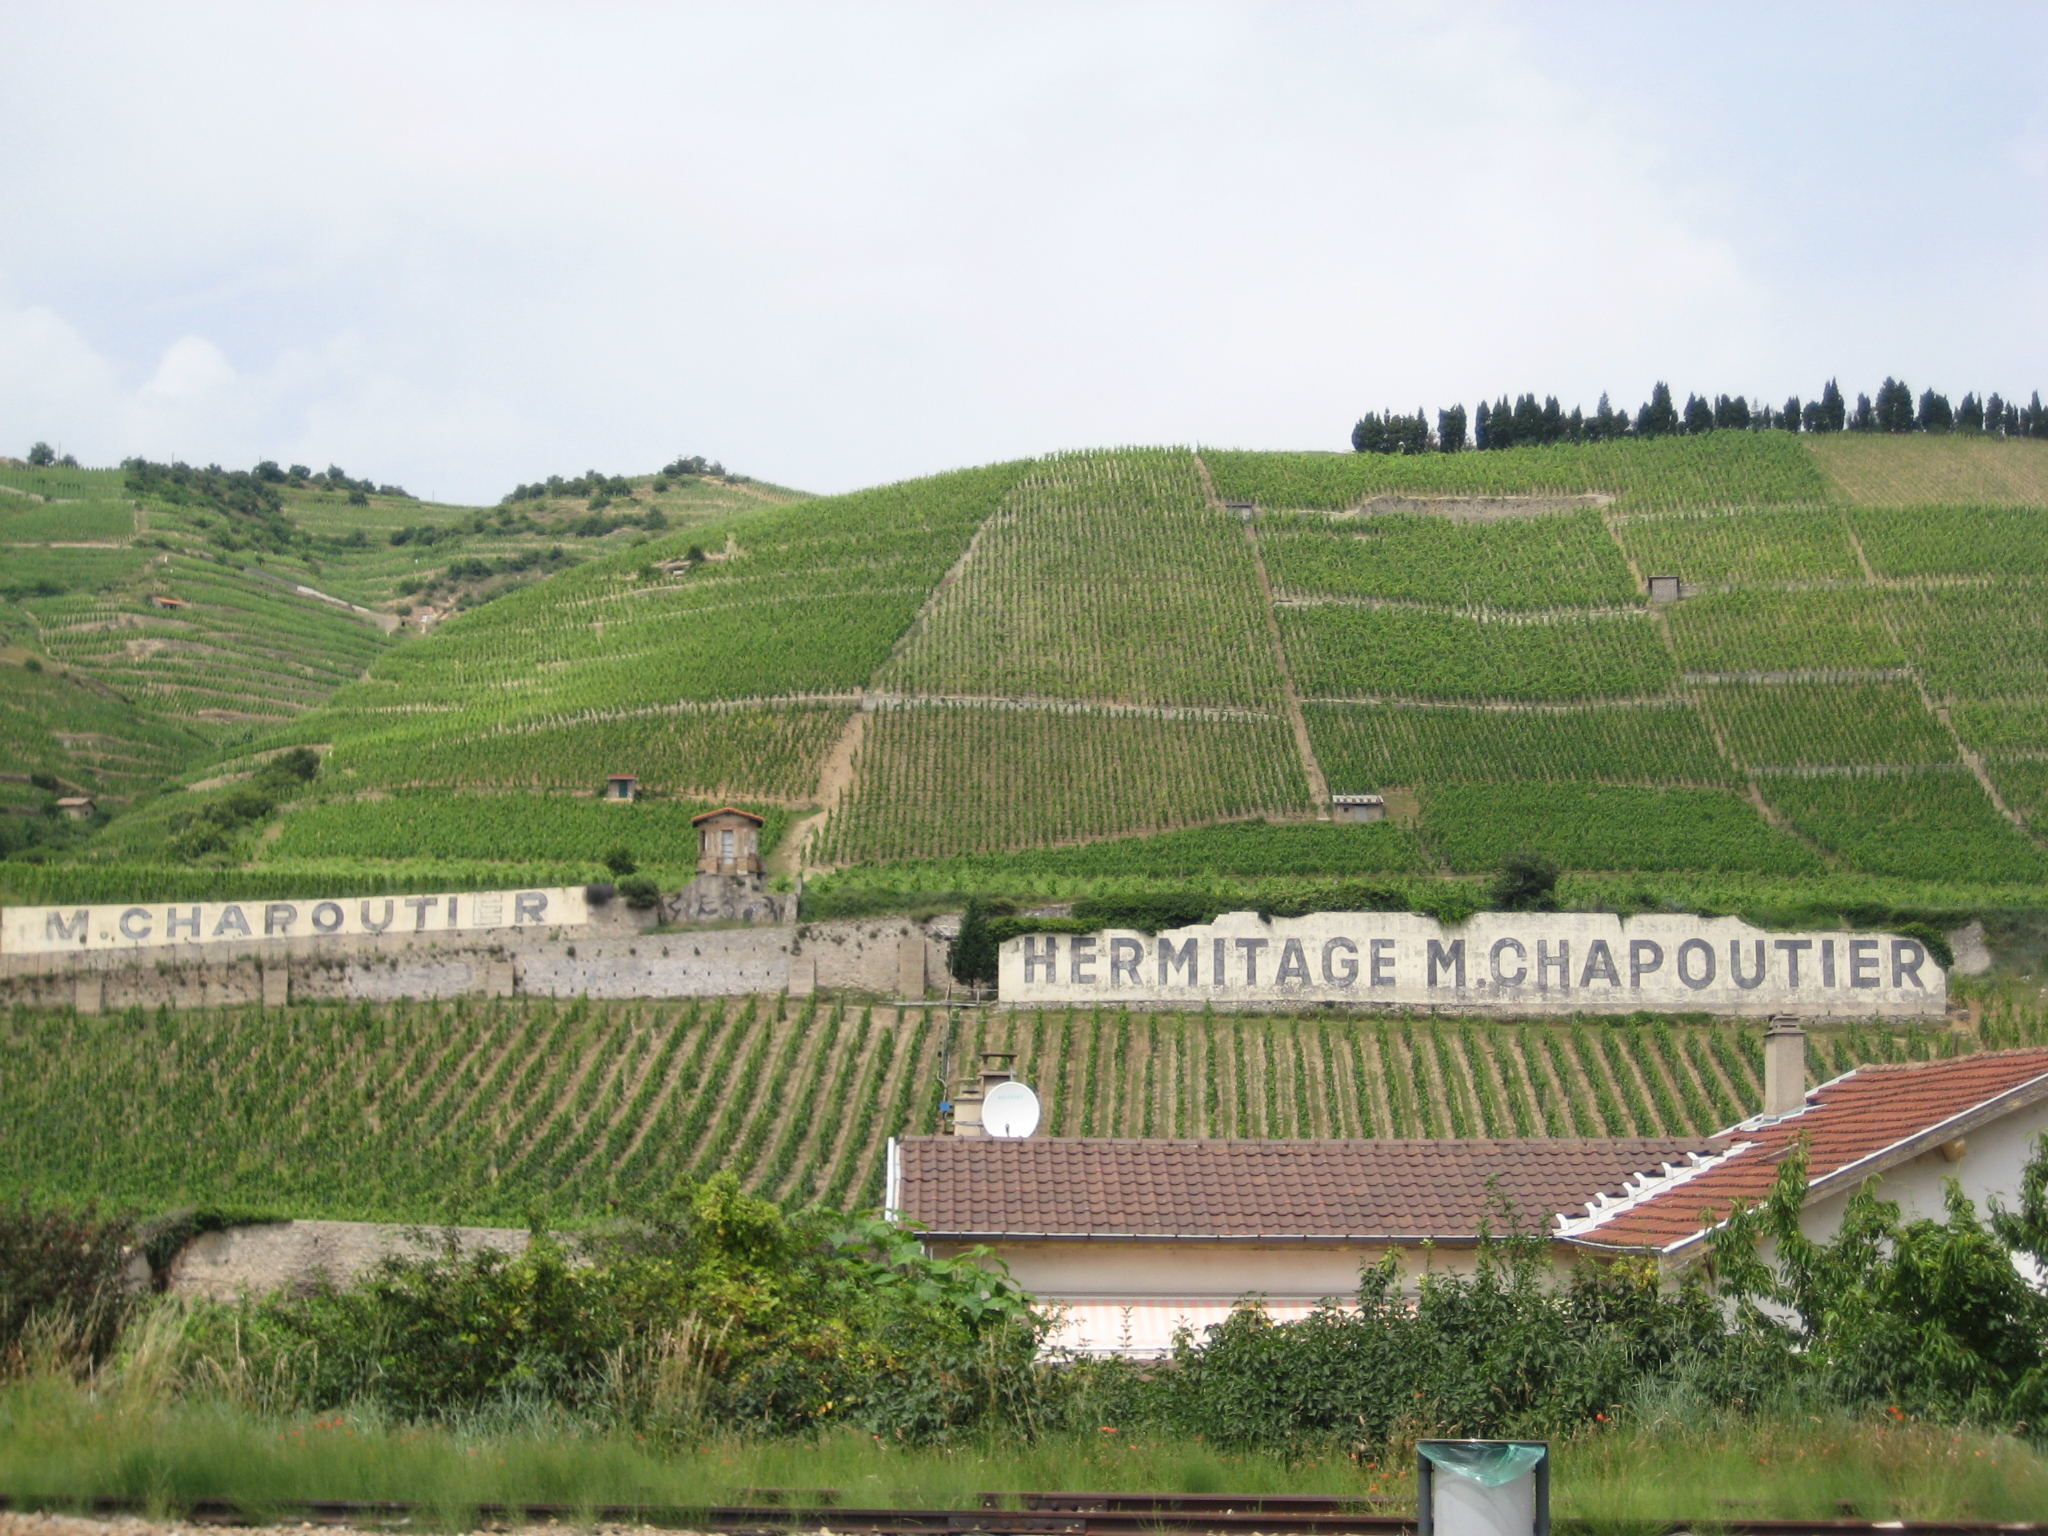 Chapoutier Vineyards in Hermitage